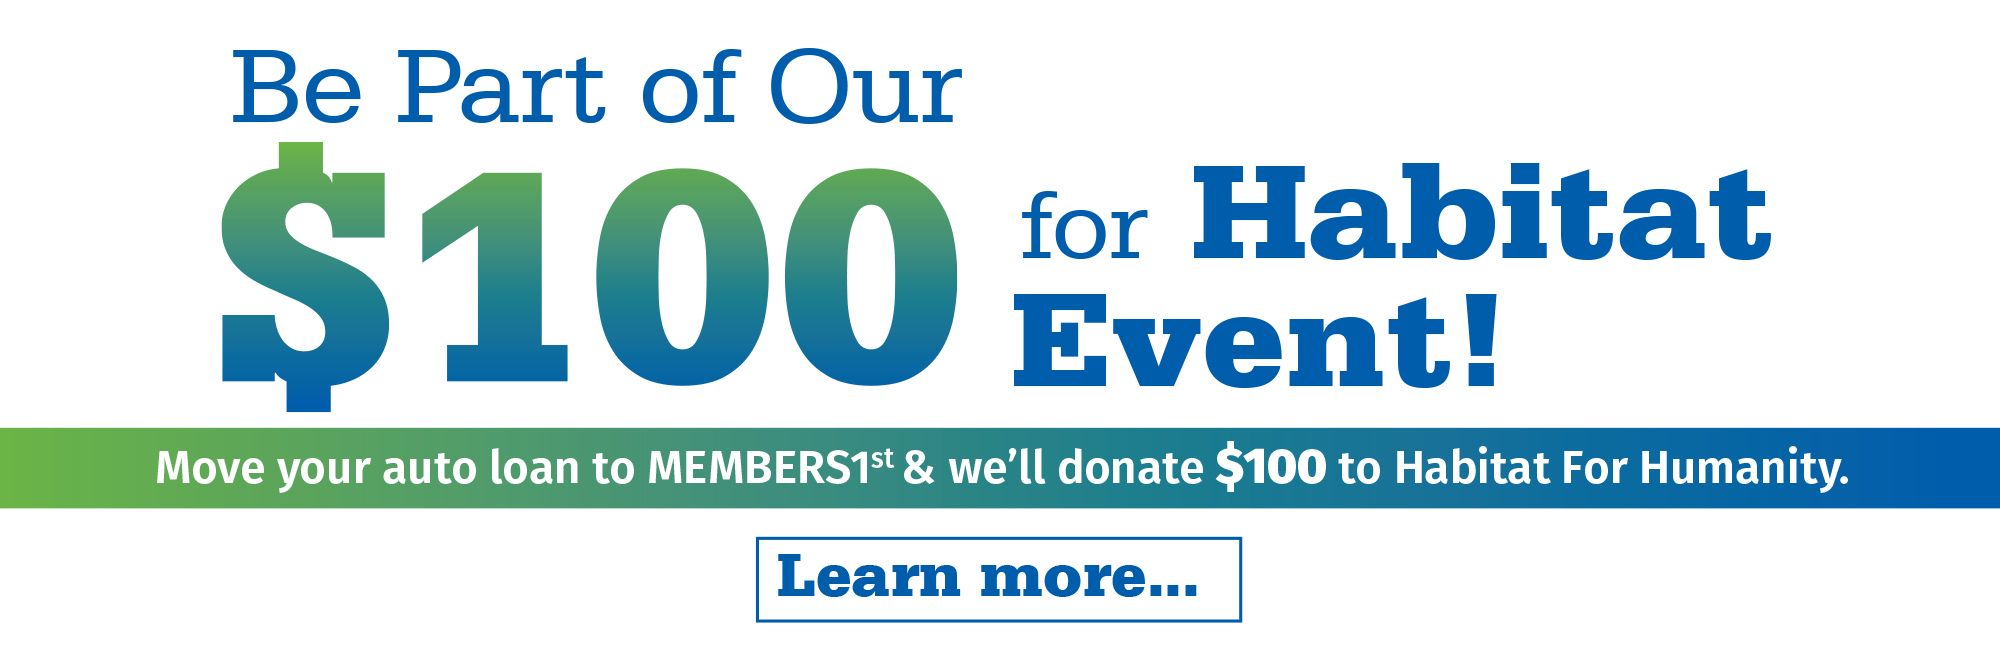 Refinance your auto loan with us and we'll donate $100 to Habitat for Humanity.